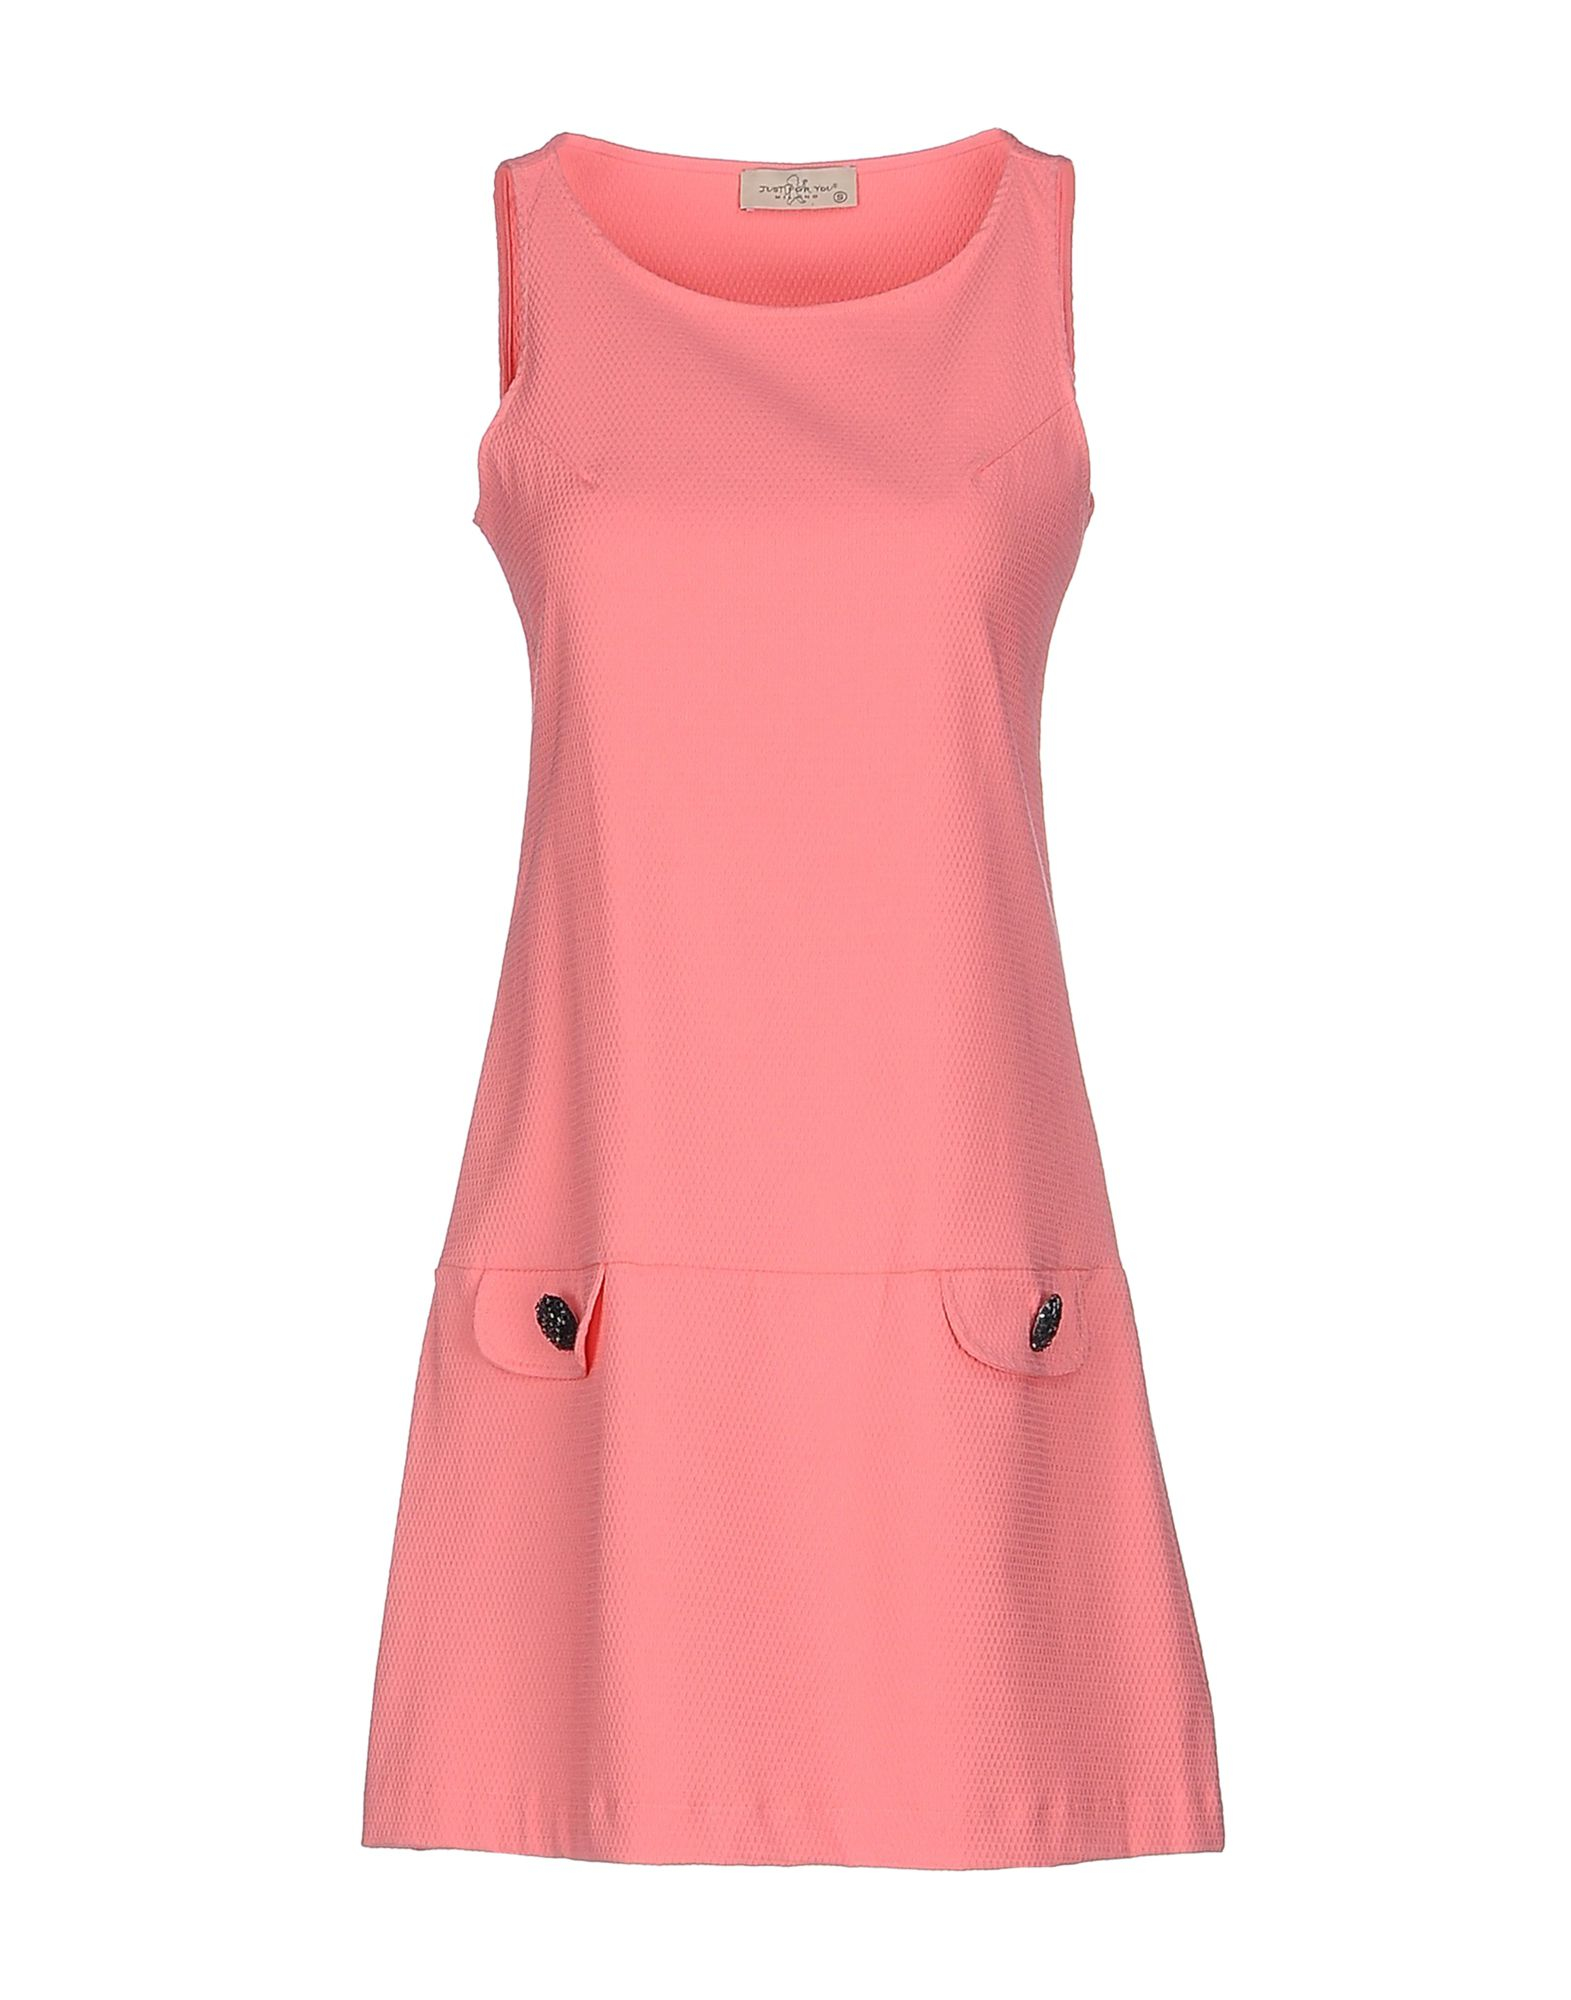 Just For You Short Dress In Pink Pastel Pink Save 53